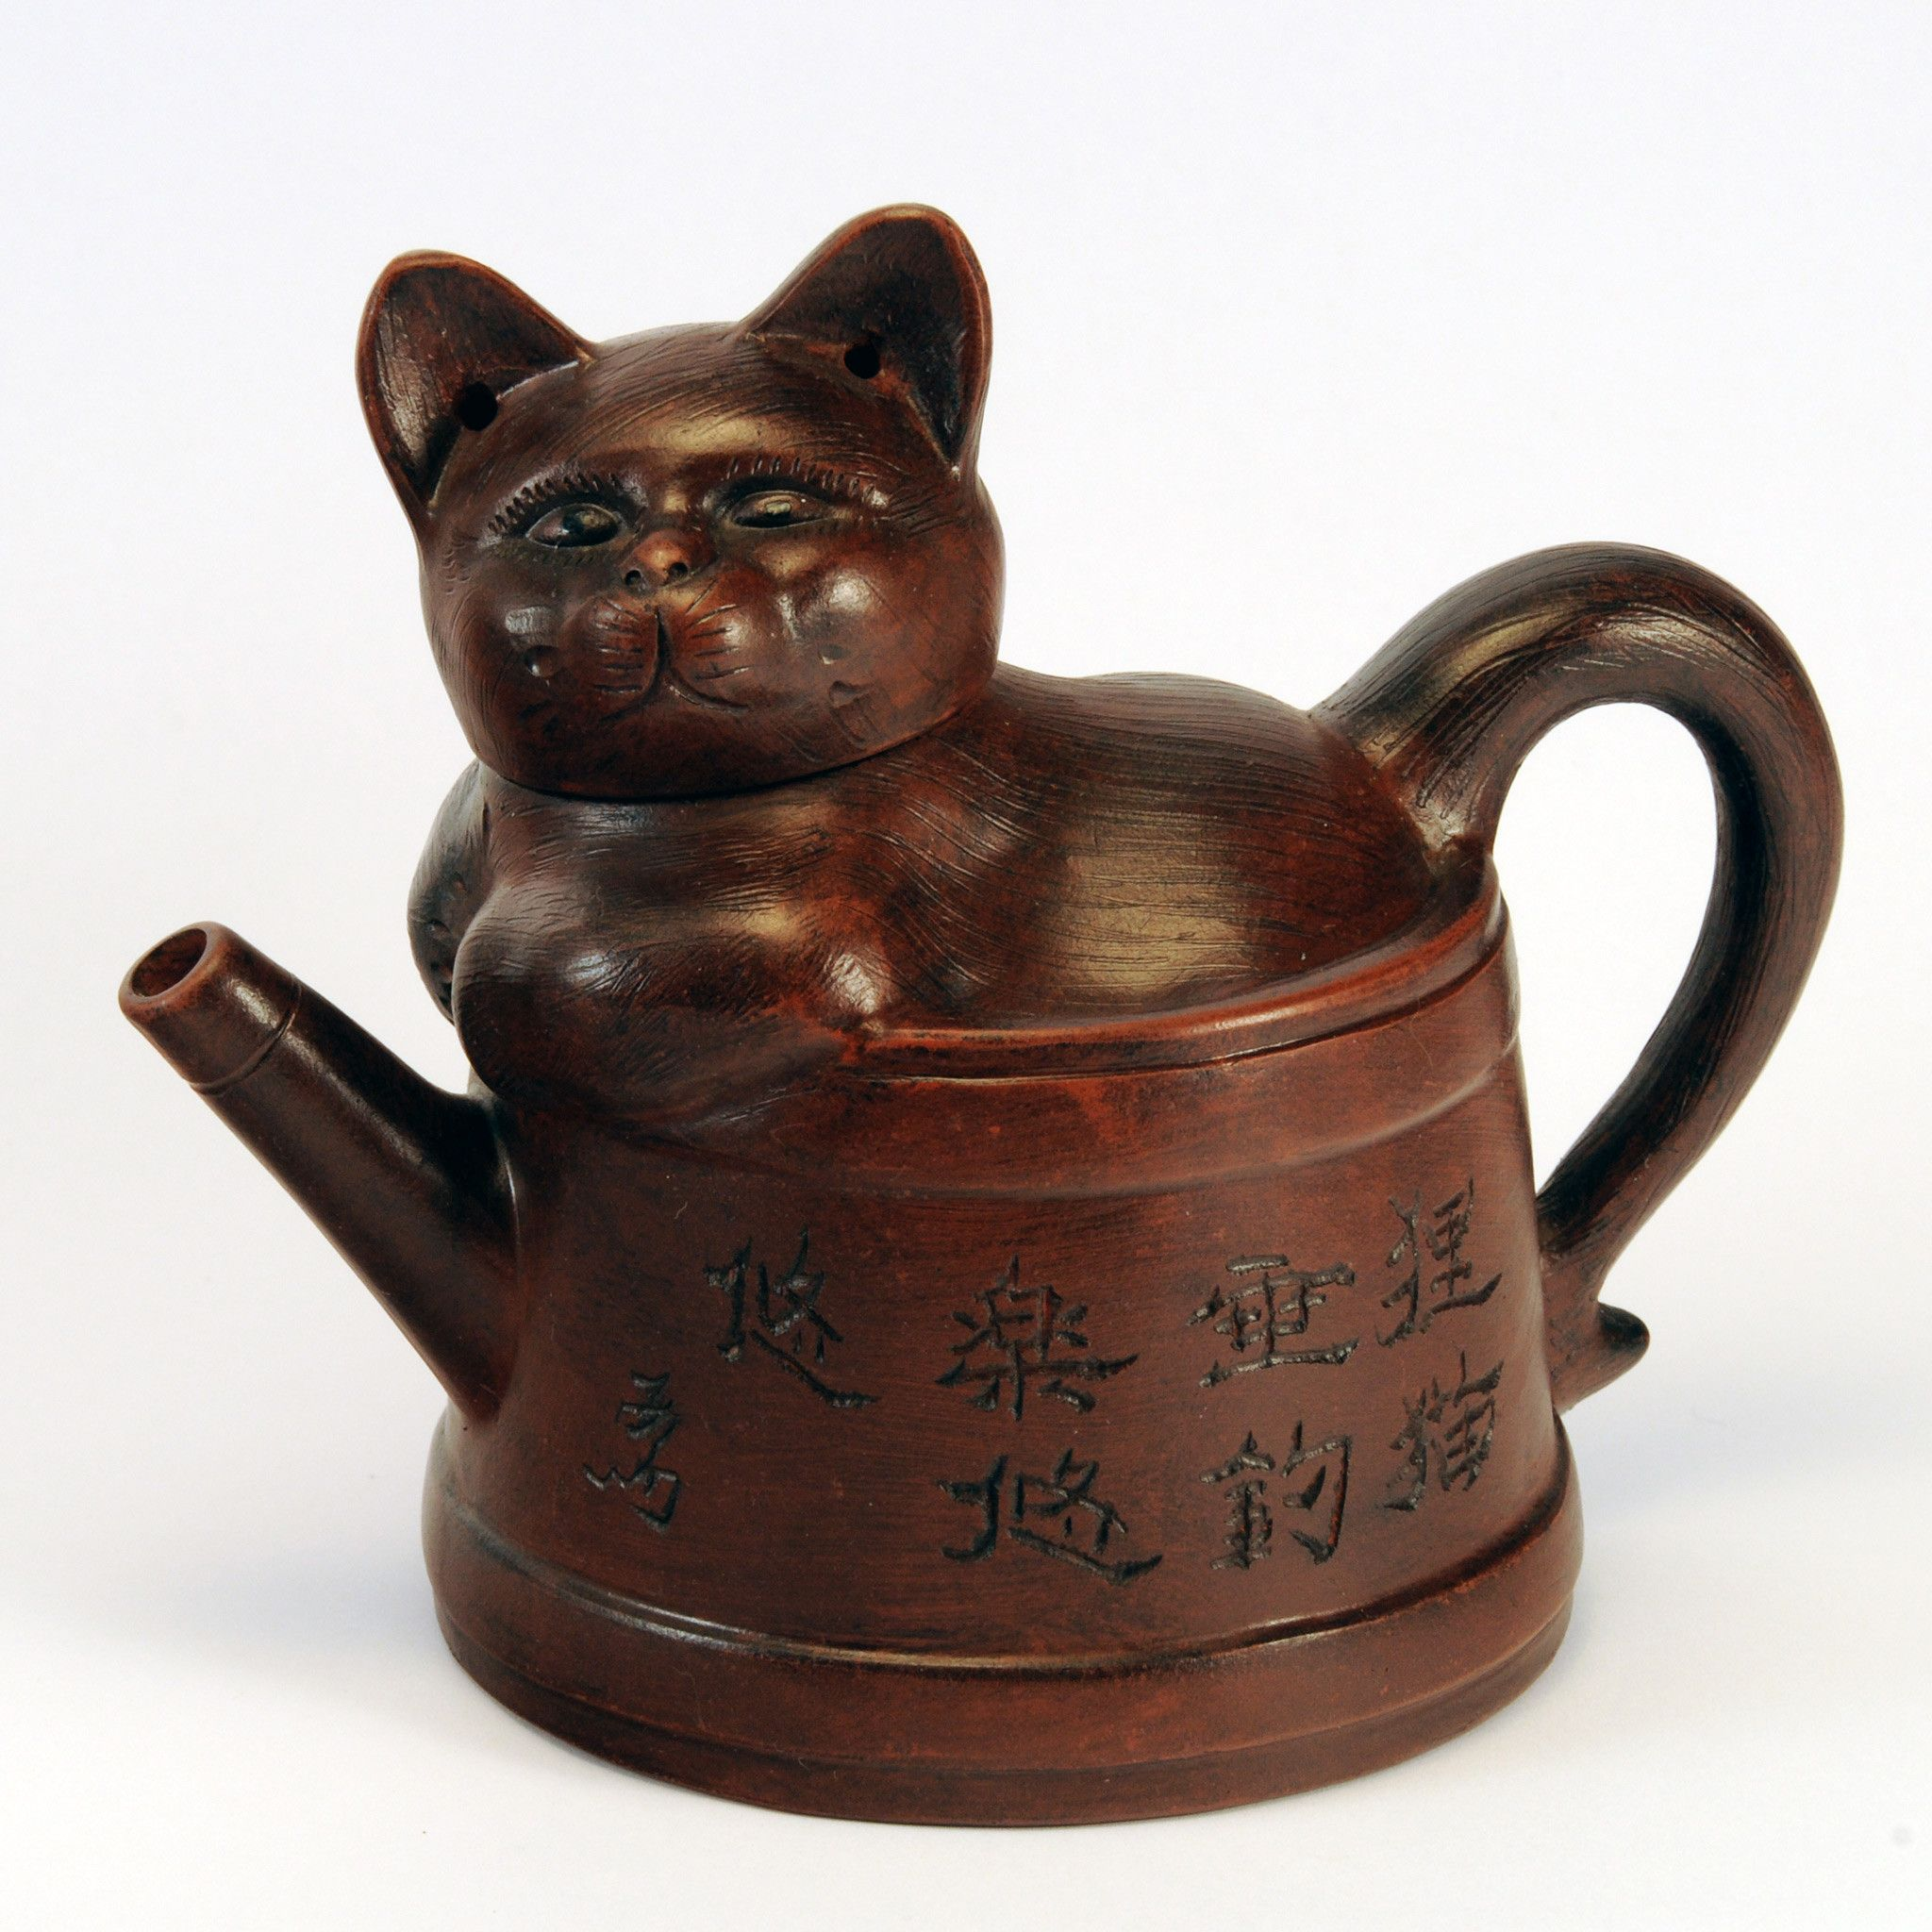 Chinese clay cat teapot, textured brown Tea pots, Clay